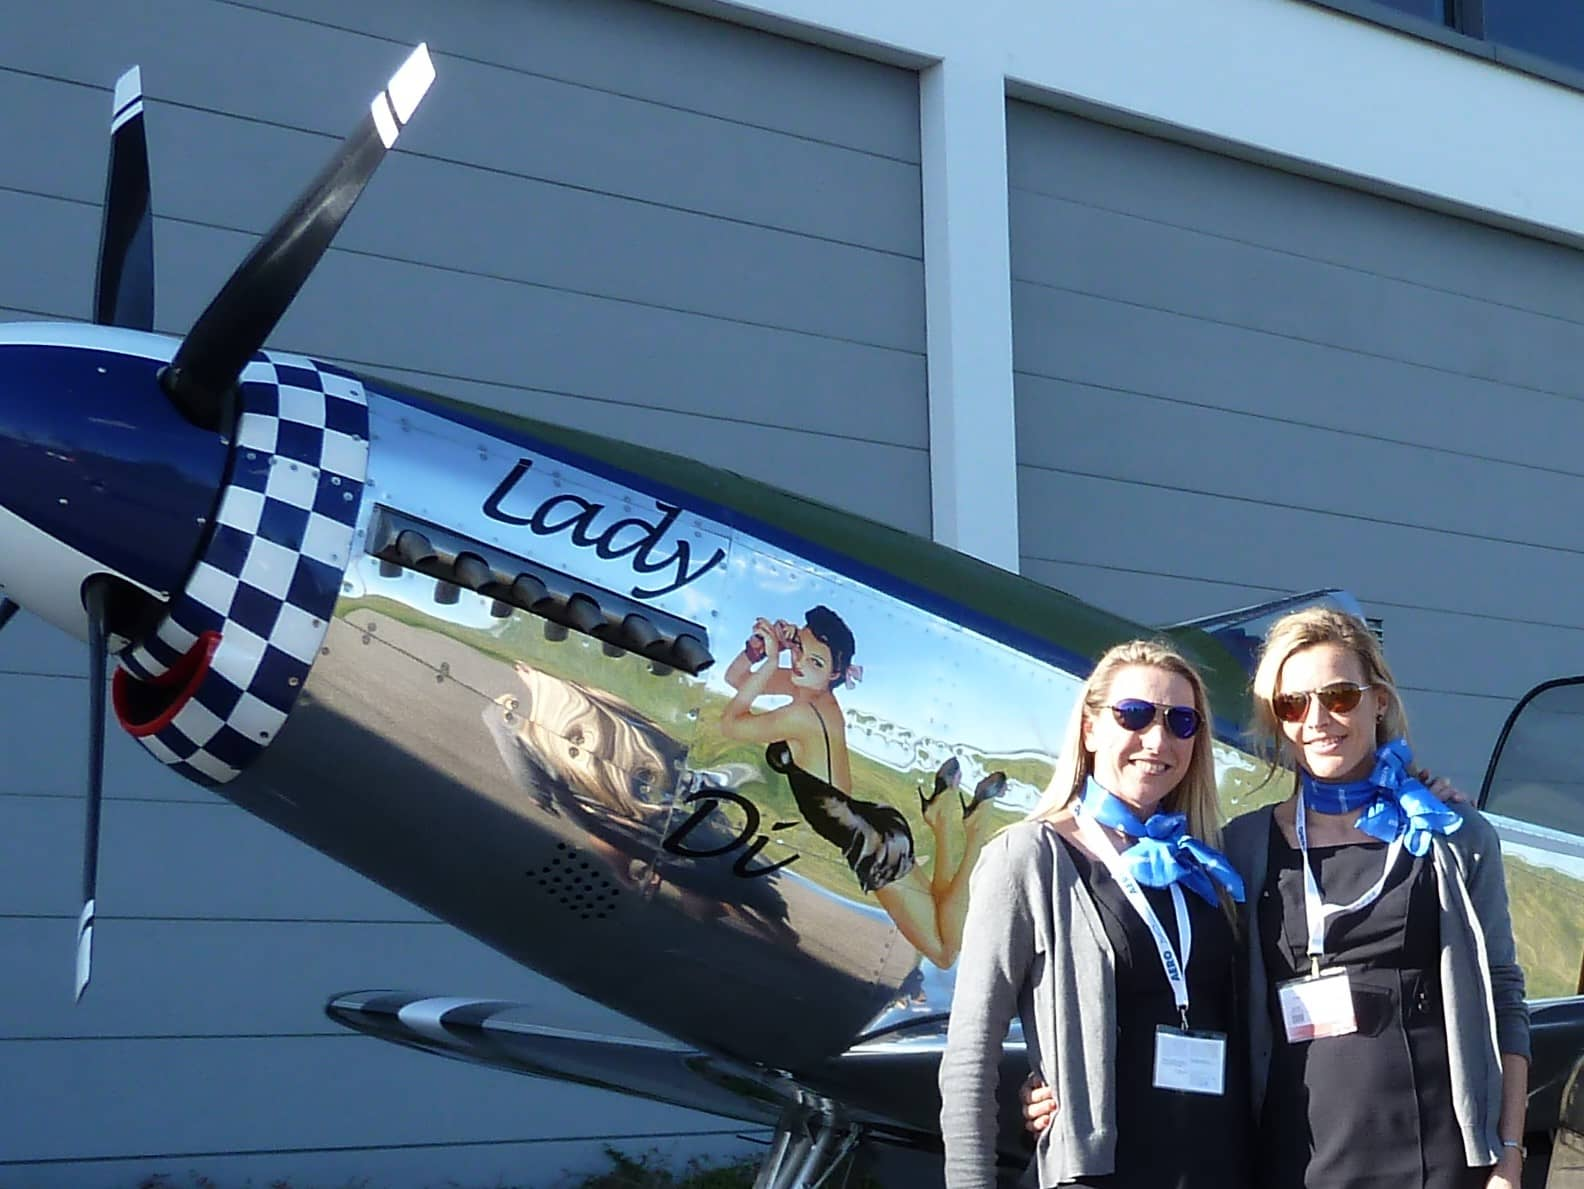 Girls-Freidrichshafen-beside-plane-nose-art